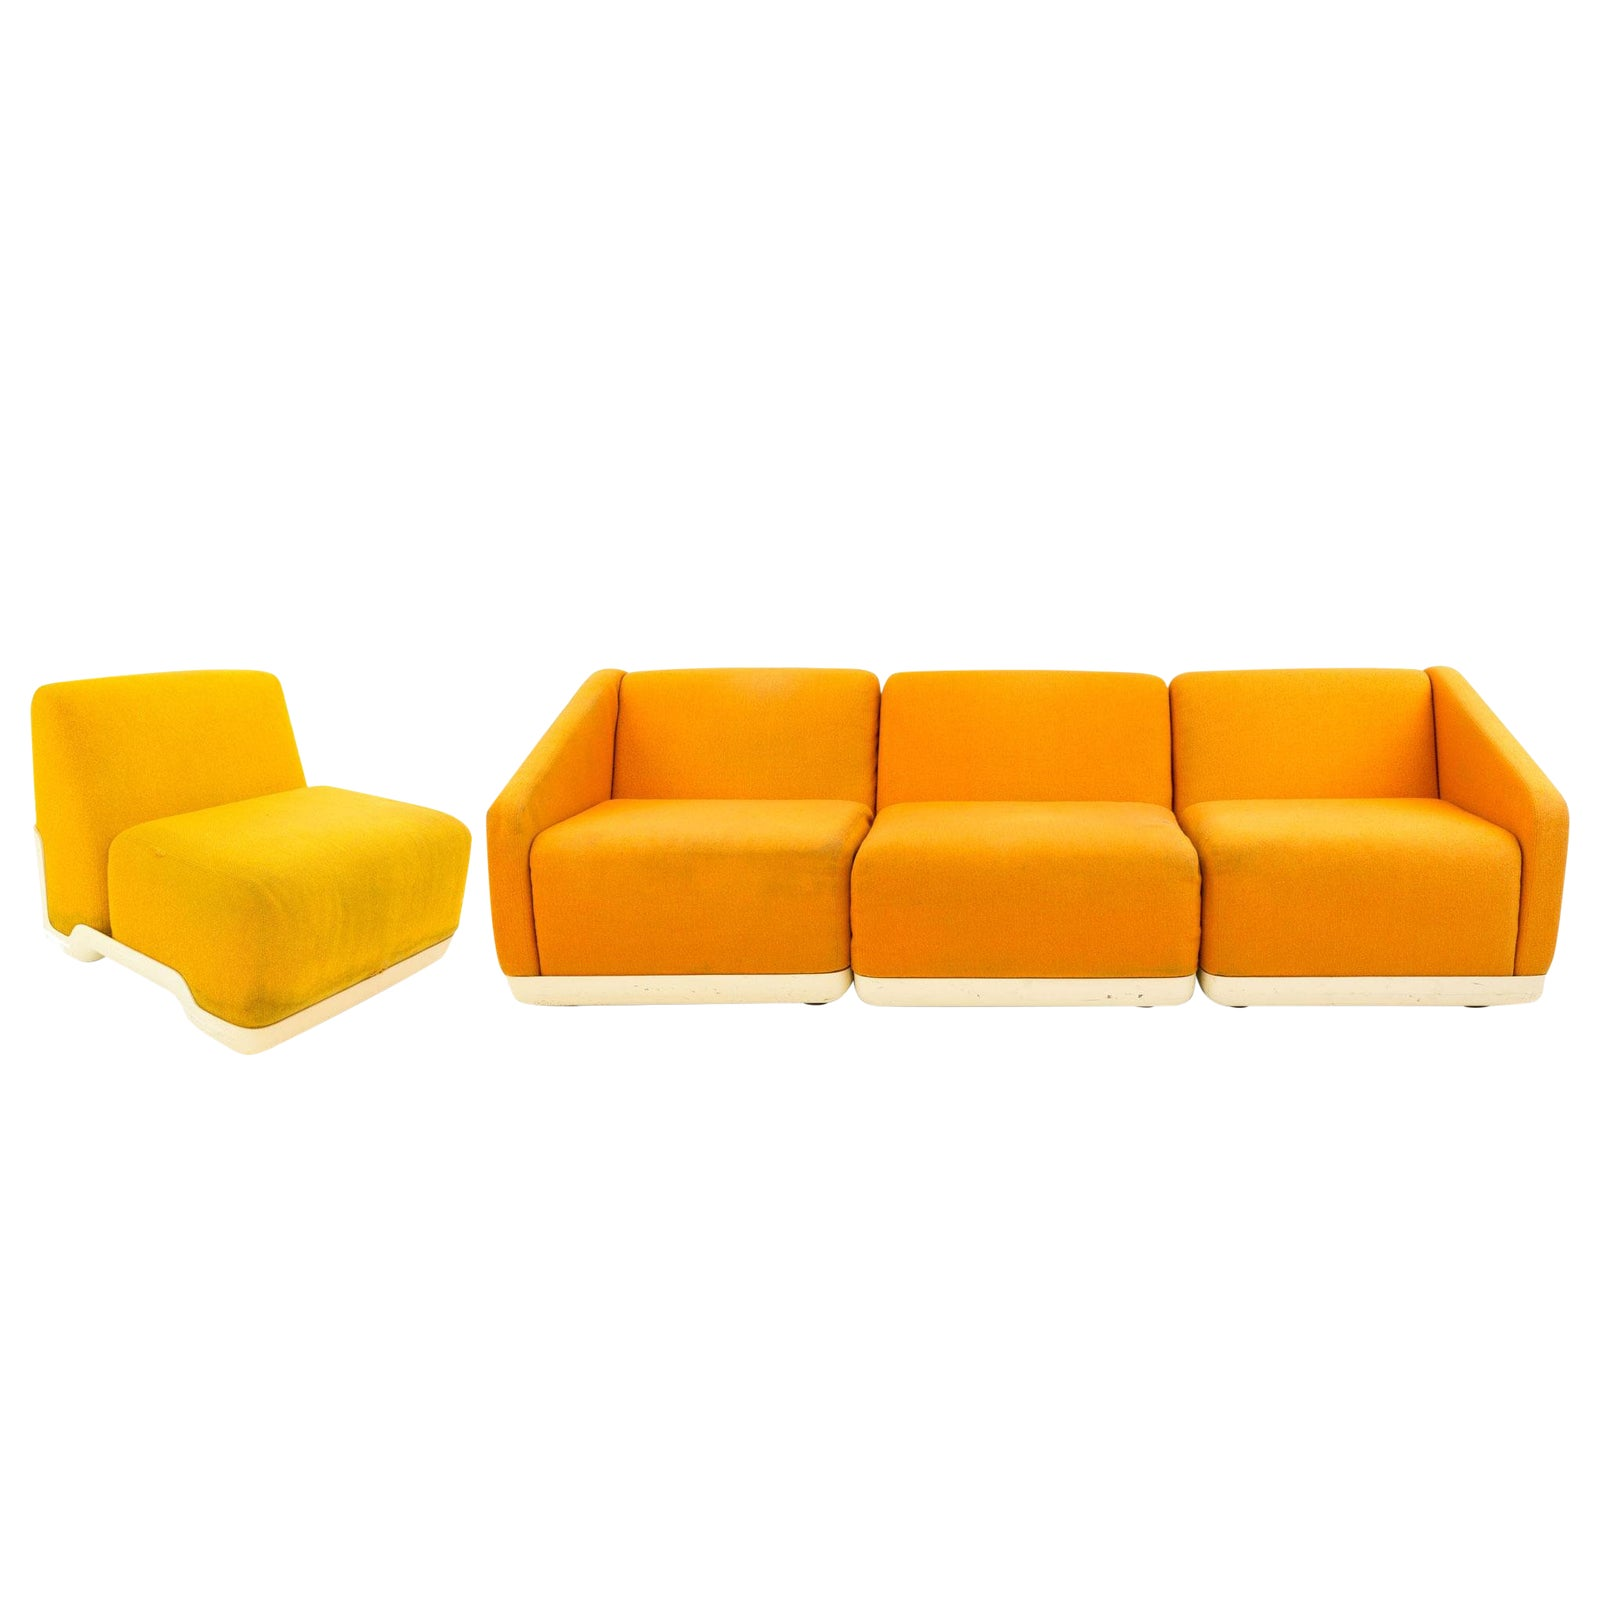 Mid-Century Modern Harvey Probber Fiberglass Convertible Sectional Sofa - 4  Pieces